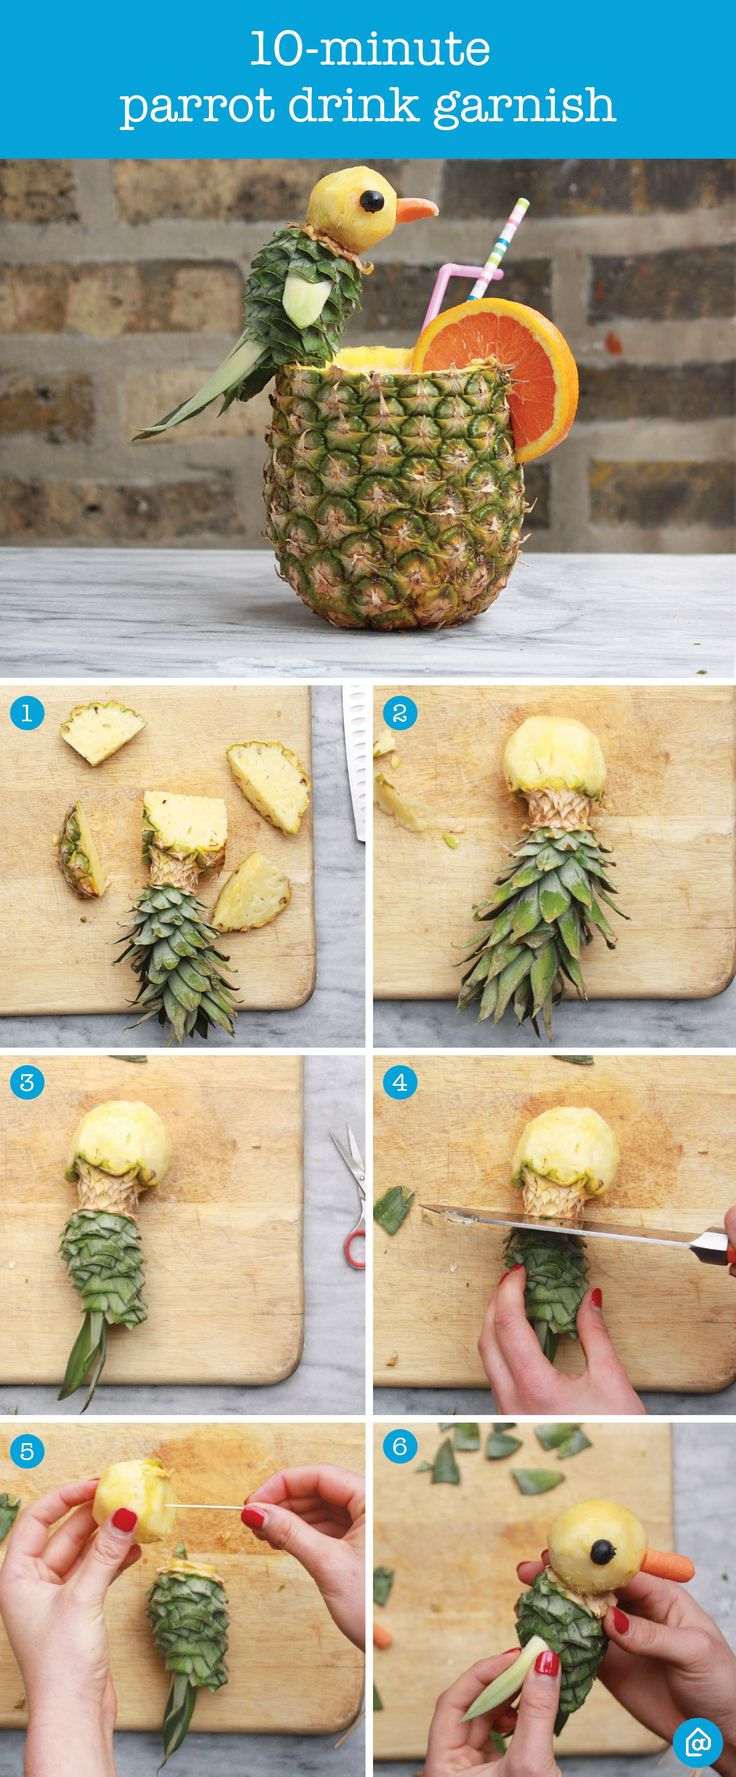 Planning a party? Preparing for Memorial Day weekend? Add a fun twist to your party garnishes with this fun and easy parrot garnish made from a pineapple. Steps: 1) Cut off the top of the pineapple 2) Round out the top to form the head 3) Slice the leaves, leaving a few at the end for the tail 4) Cut off the section between the head and body; secure with a toothpick 5) Use a toothpick to add 2 leaves for arms, 1 carrot for a nose and 2 blueberries for eyes. Enjoy with your favorite beverage!